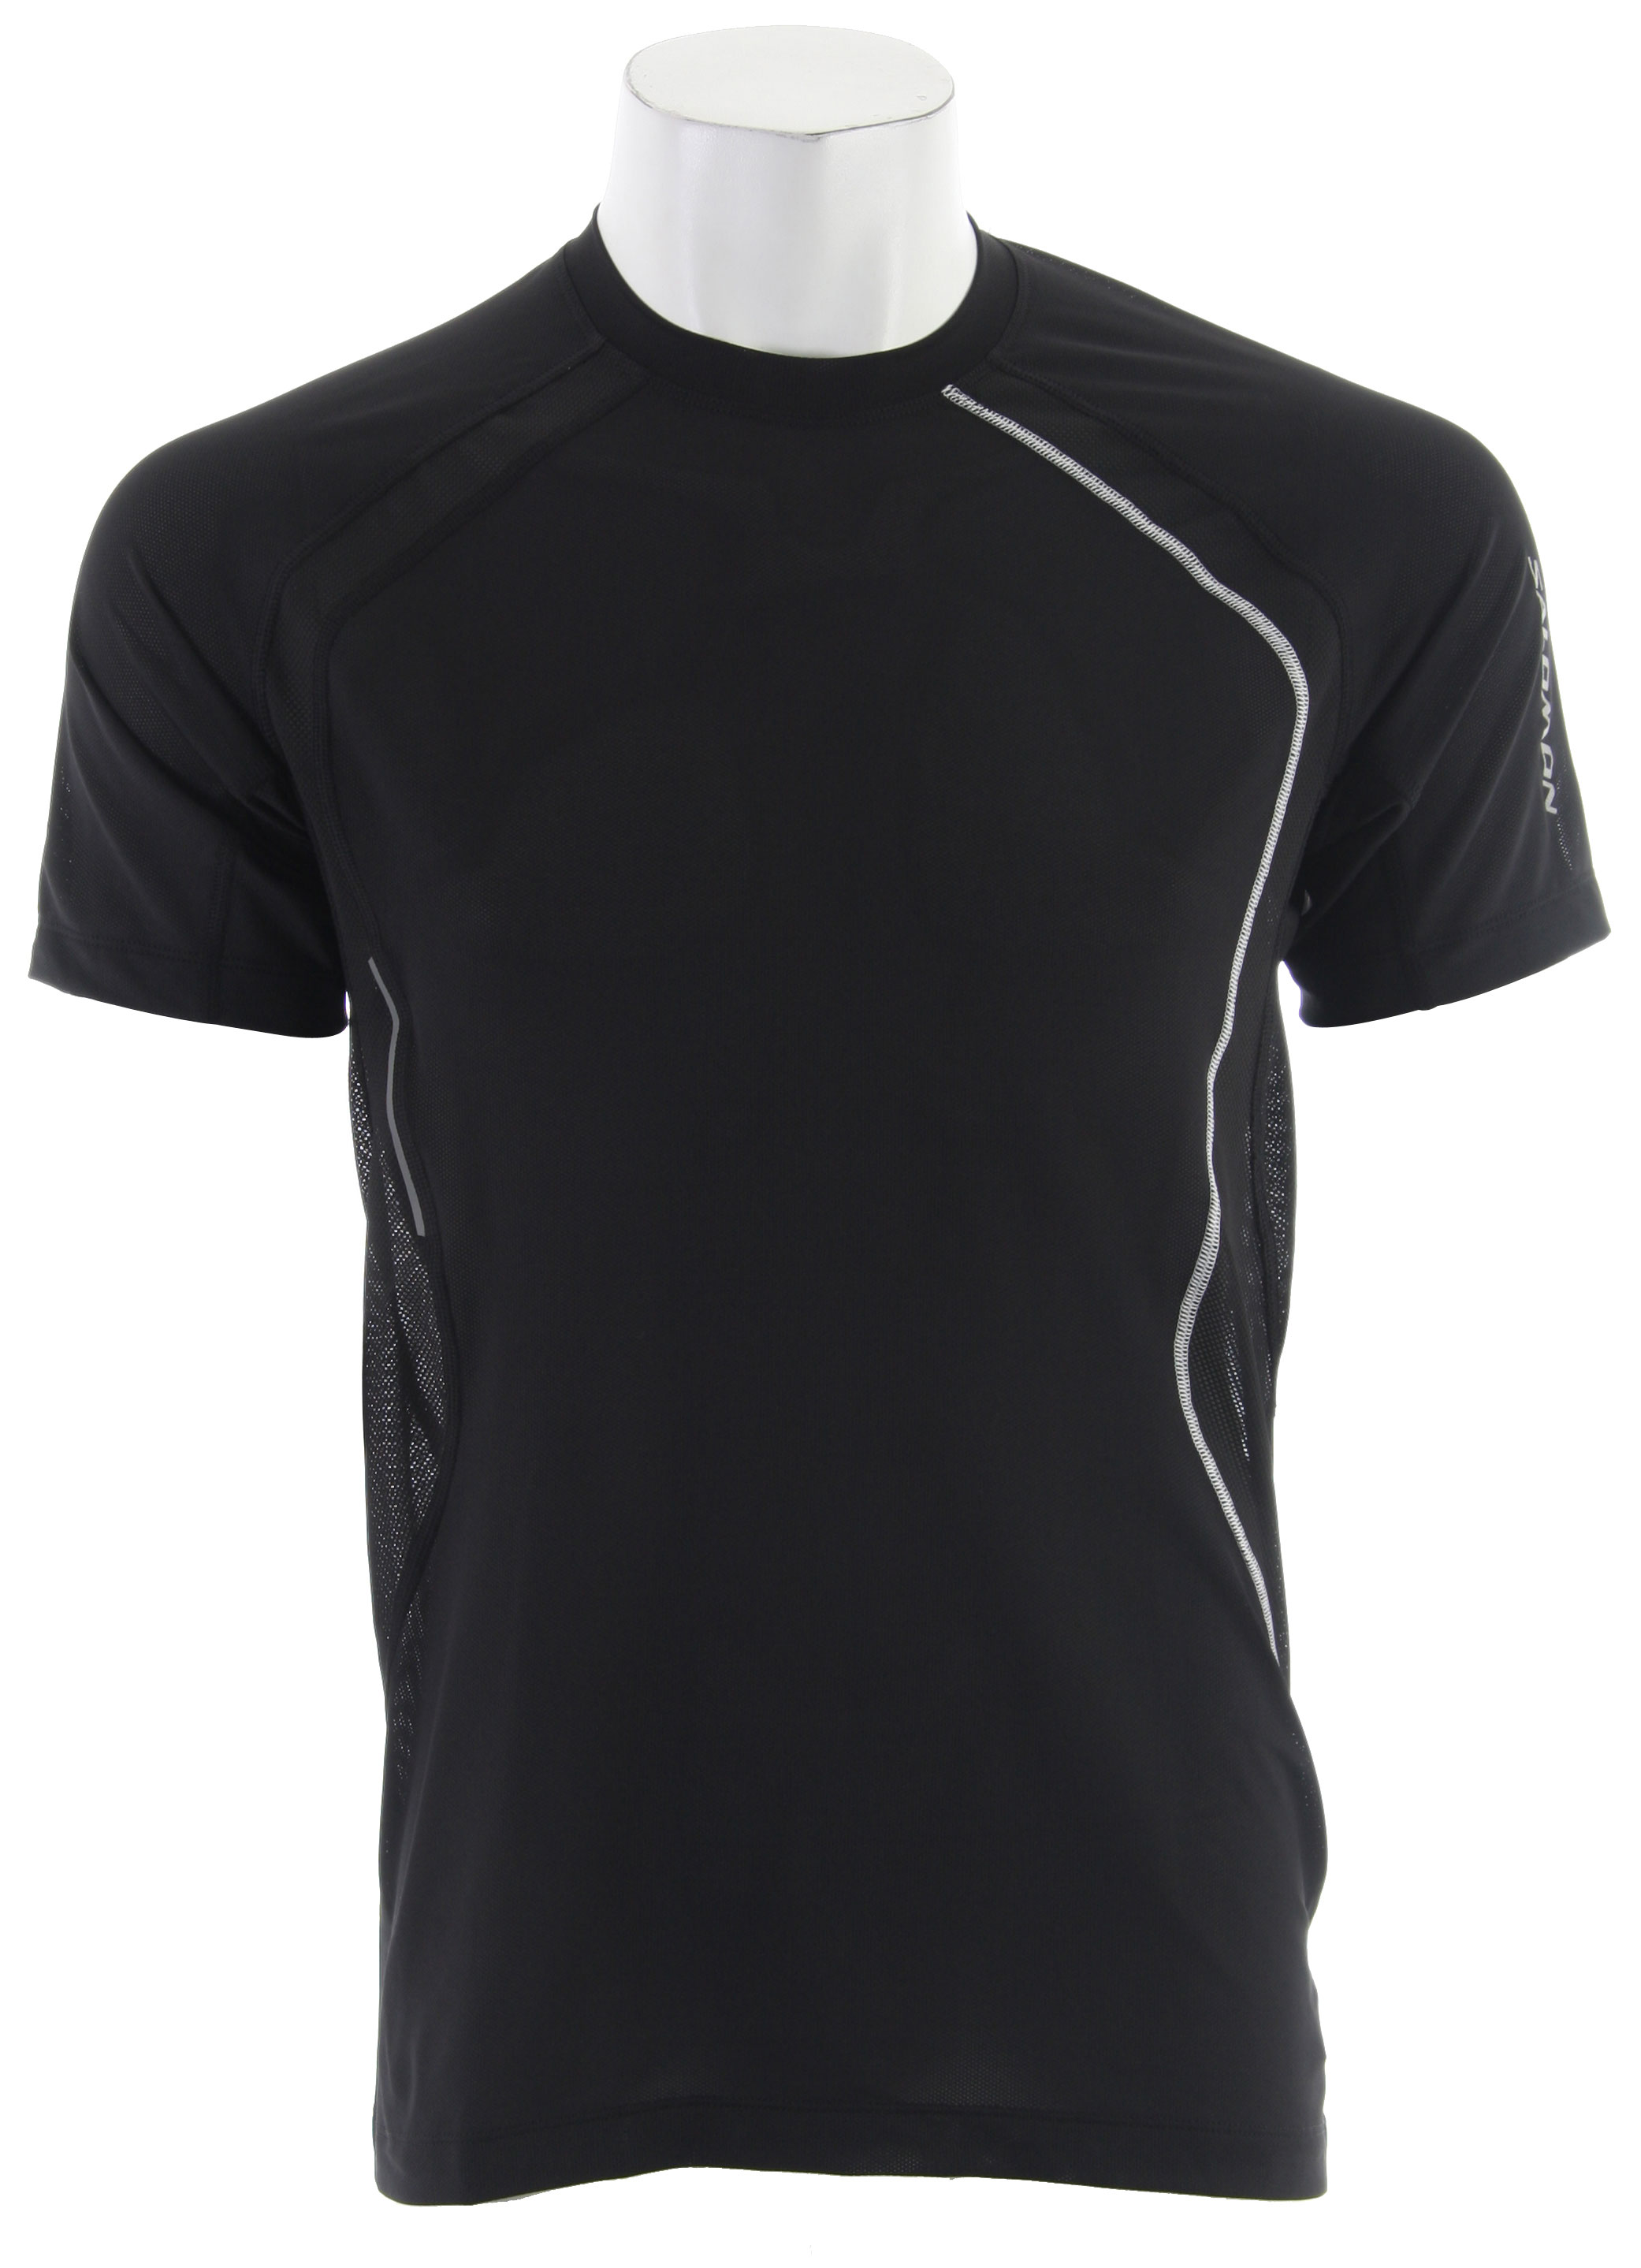 Camp and Hike Light weight and technical, the Salomon Trail Runner II Tech T-Shirt has mesh panels for improved ventilation and 2 gel pockets.Key Features of the Salomon Trail Runner II Tech T-Shirt:  Smart Skin  Acti Lite Ii Stretch Mesh  Acti Lite  Ii Polymockeylet  Flatlock Seams  Reflective Branding Front & Back  2 Gel Pockets  Composition Insert: Polyester 91%, Elastane 9%  Body : Polyester 92%, Elastane 8%  Active Fit  Weight 130 G / 4,59 Oz - $43.95